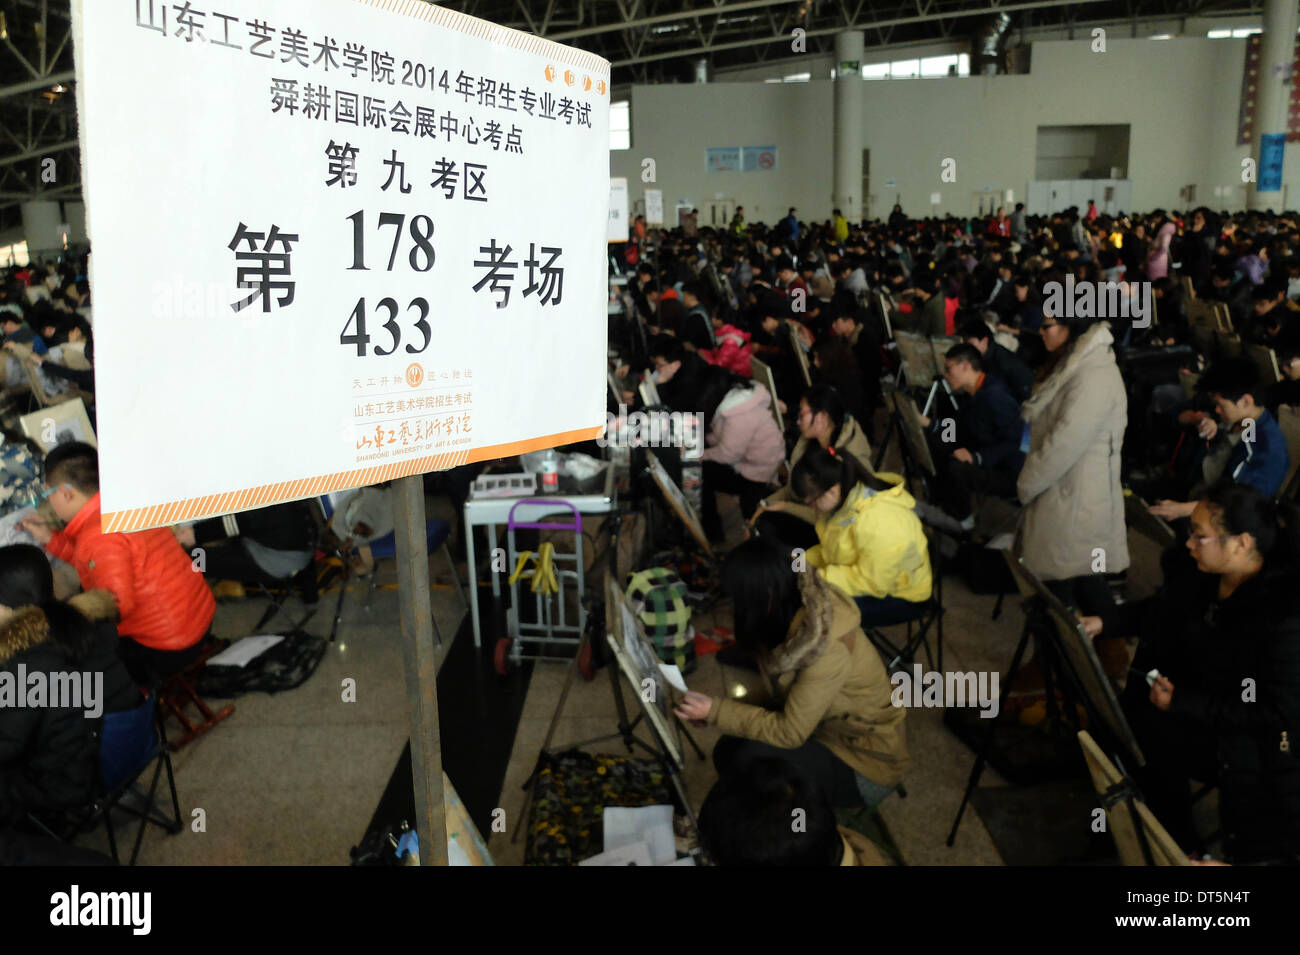 Jinan, China's Shandong Province. 10th Feb, 2014. Candidates sit a painting test for the entrance examination of Shandong University of Arts and Design in Jinan, capital of east China's Shandong Province, Feb. 10, 2014. More than 7,000 candidates took the examination for less than 2,000 admissions. © Xu Suhui/Xinhua/Alamy Live News - Stock Image